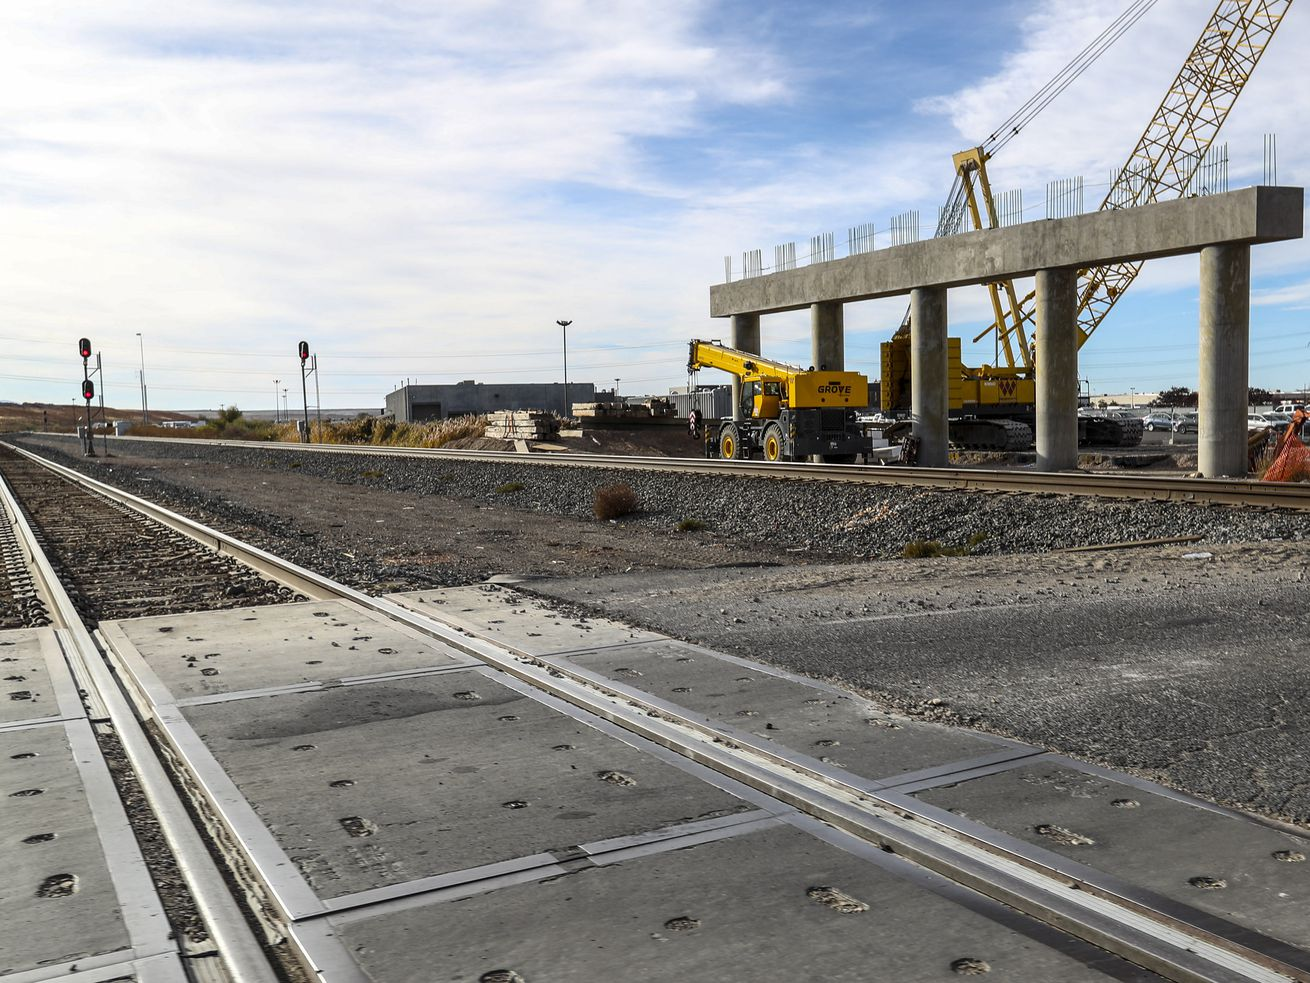 Officials hope new bridge can ease traffic woes in Salt Lake City